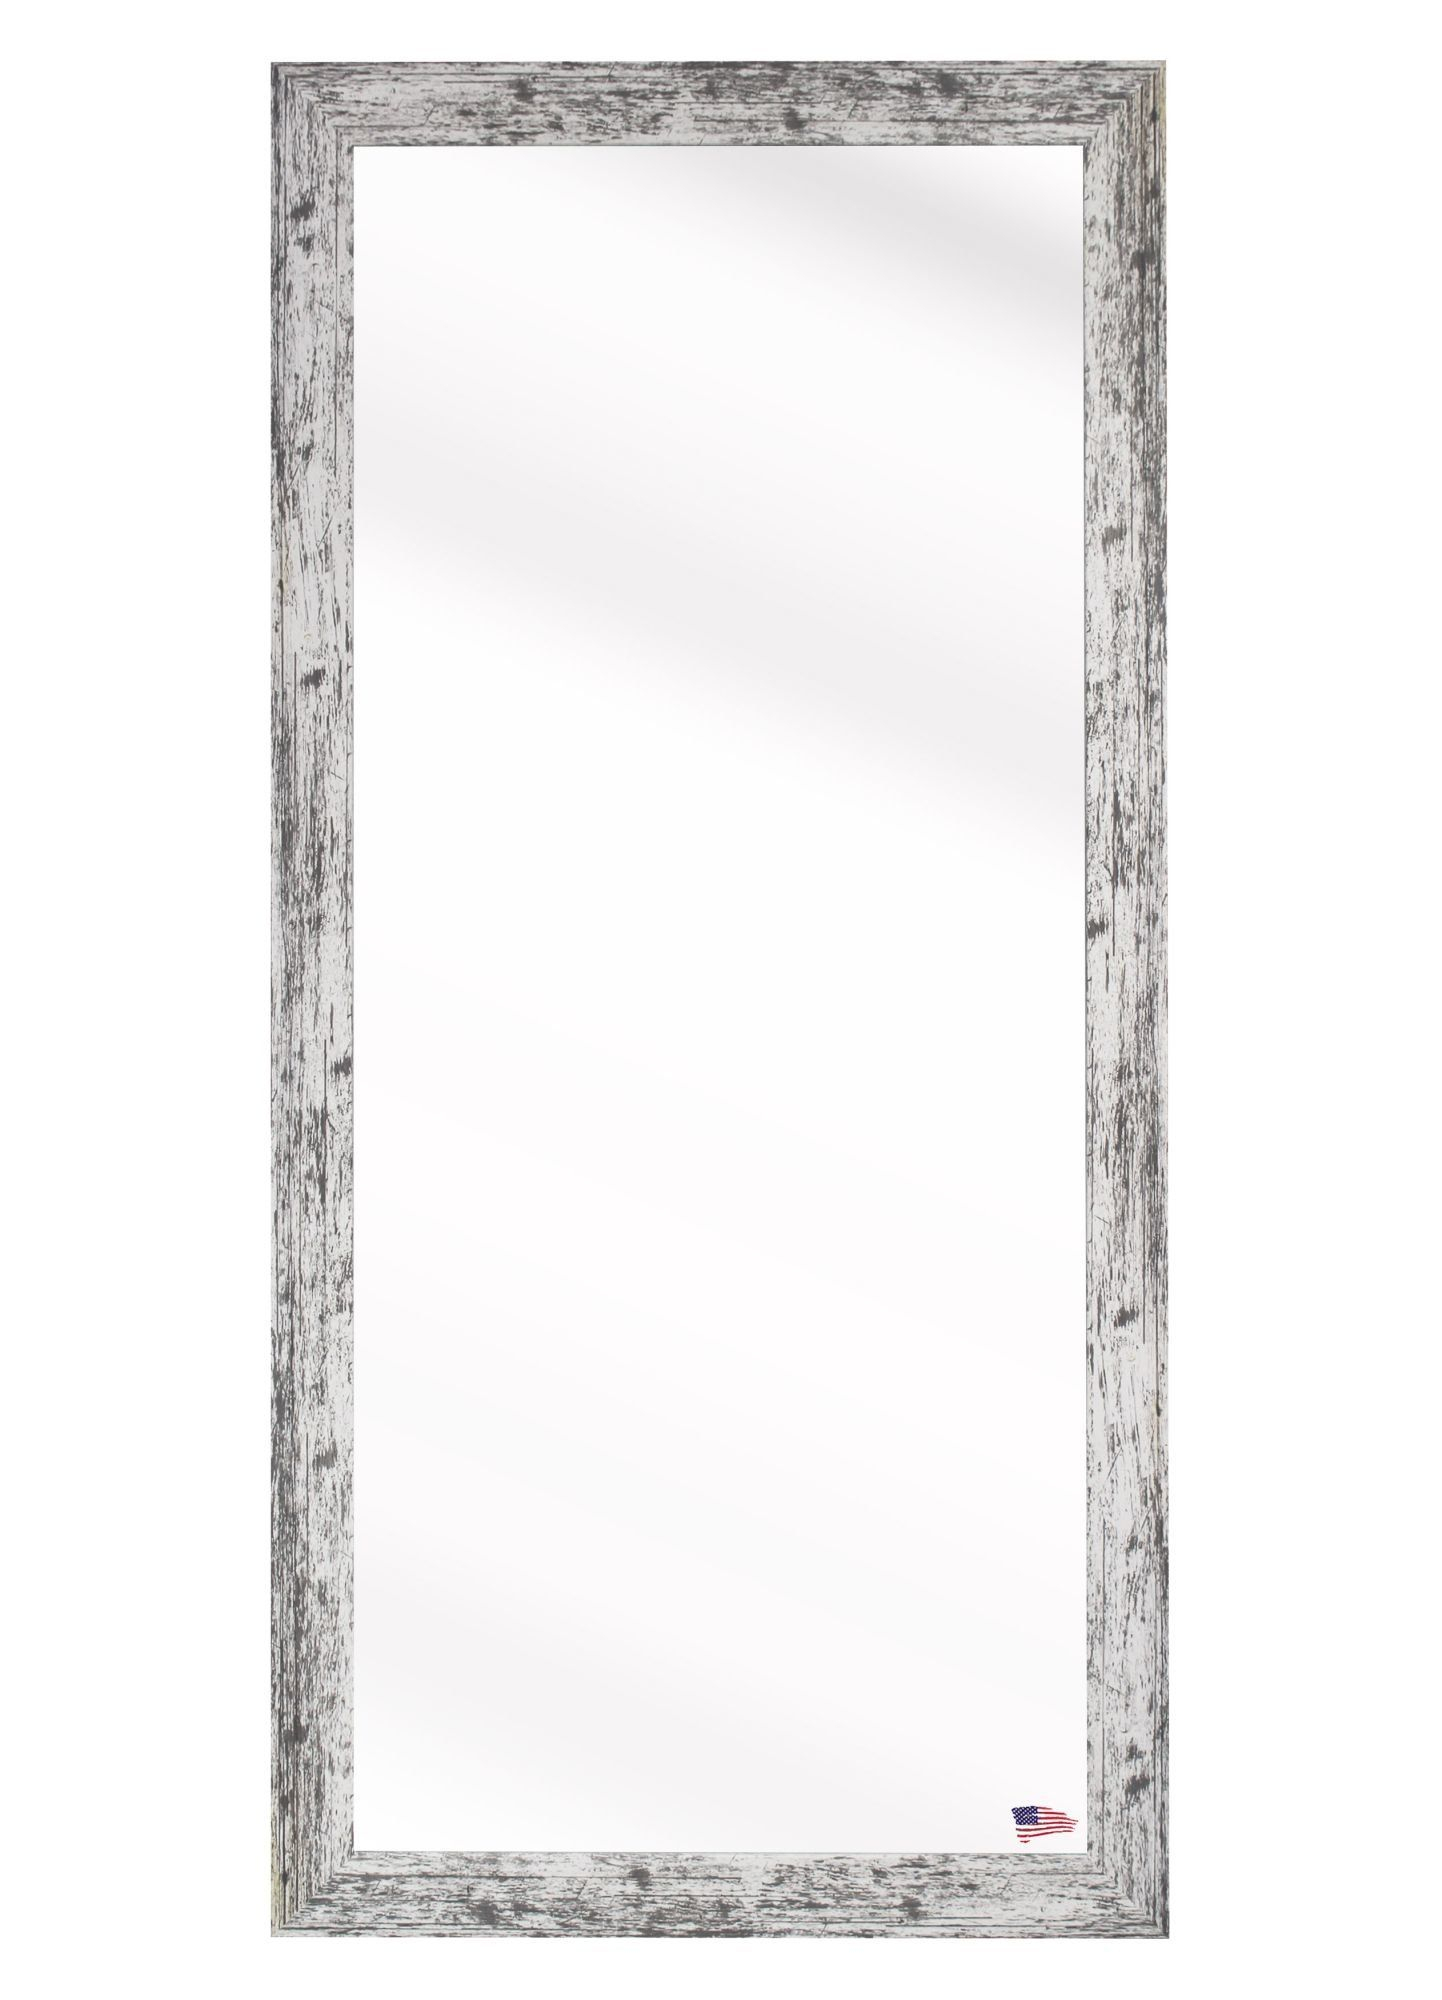 Handcrafted Farmhouse Full Length Mirror | Products With Regard To Handcrafted Farmhouse Full Length Mirrors (Image 13 of 20)